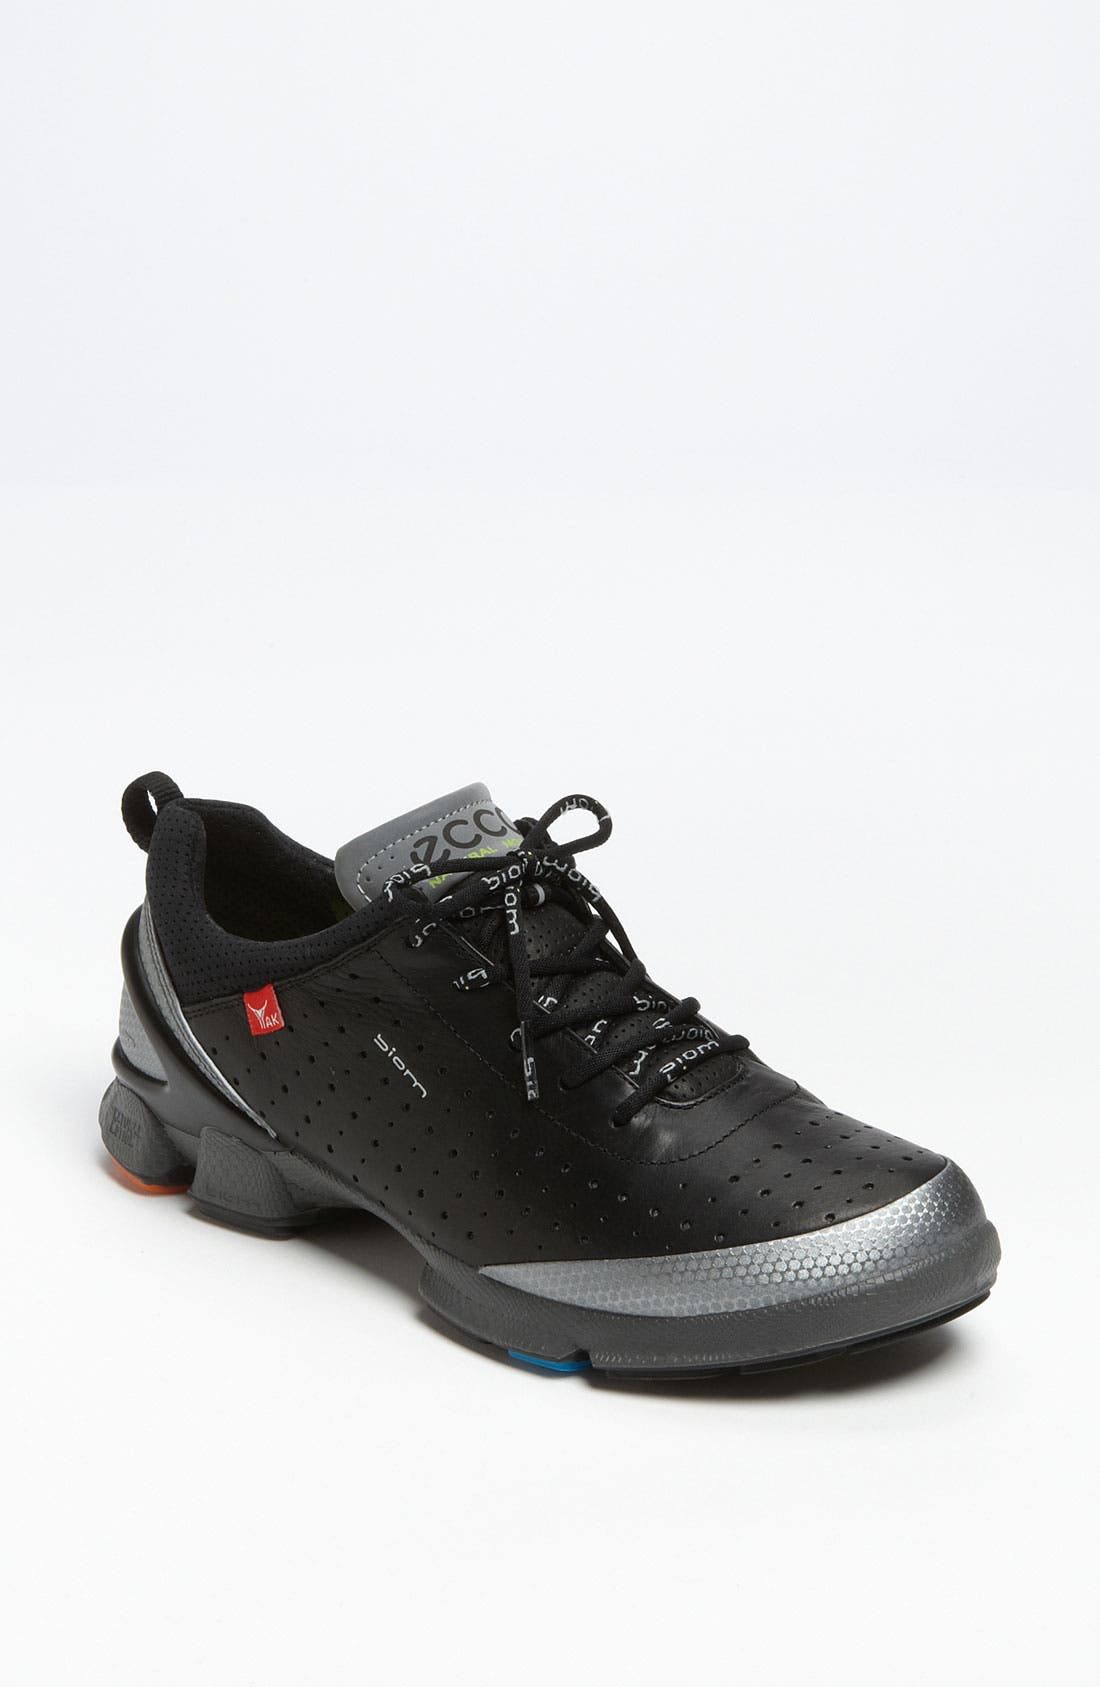 Alternate Image 1 Selected - ECCO 'Biom Walk' Sneaker (Women)